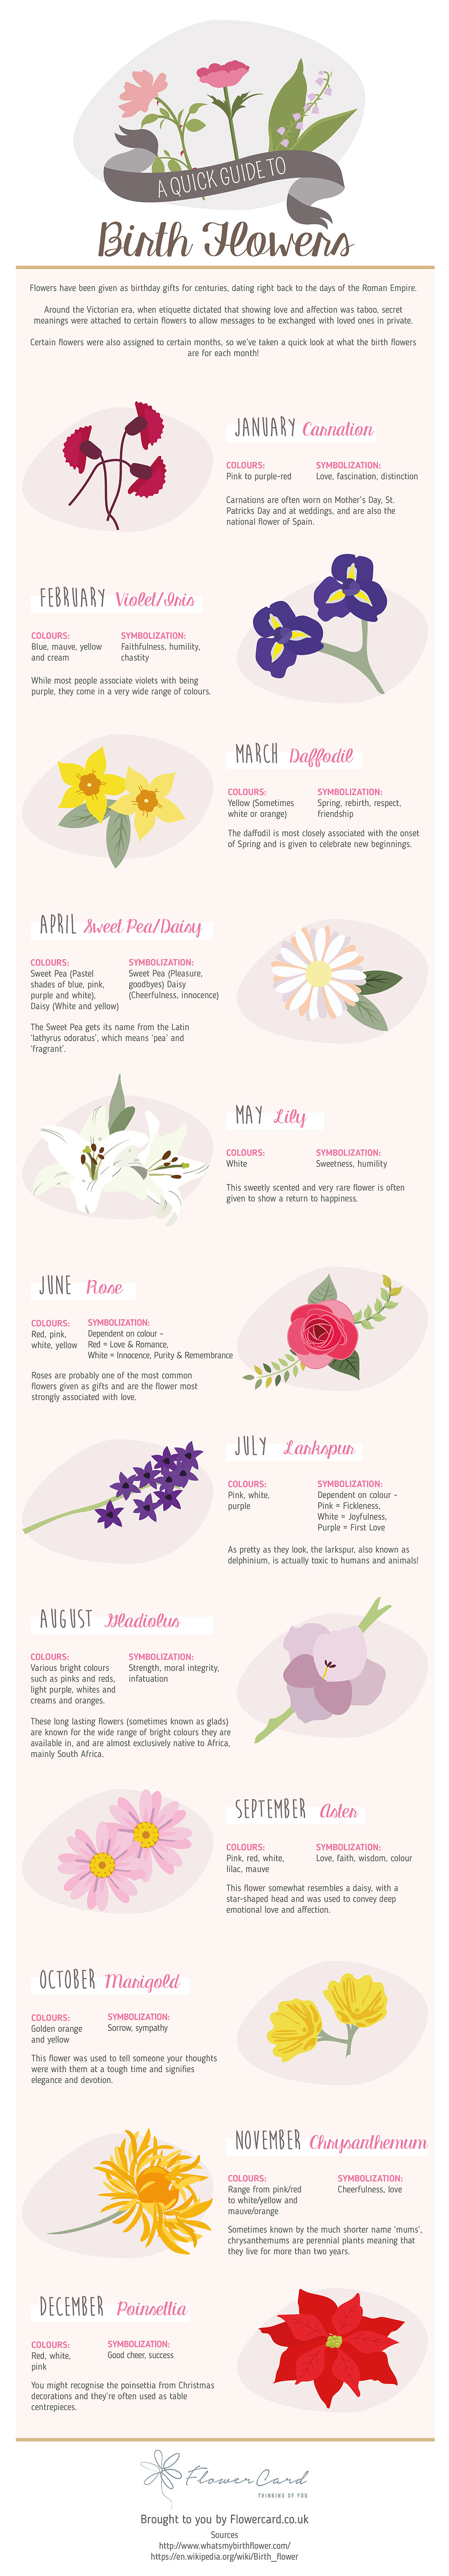 A quick guide to birth flowers infographic flowercard thinking flowercard blog izmirmasajfo Images